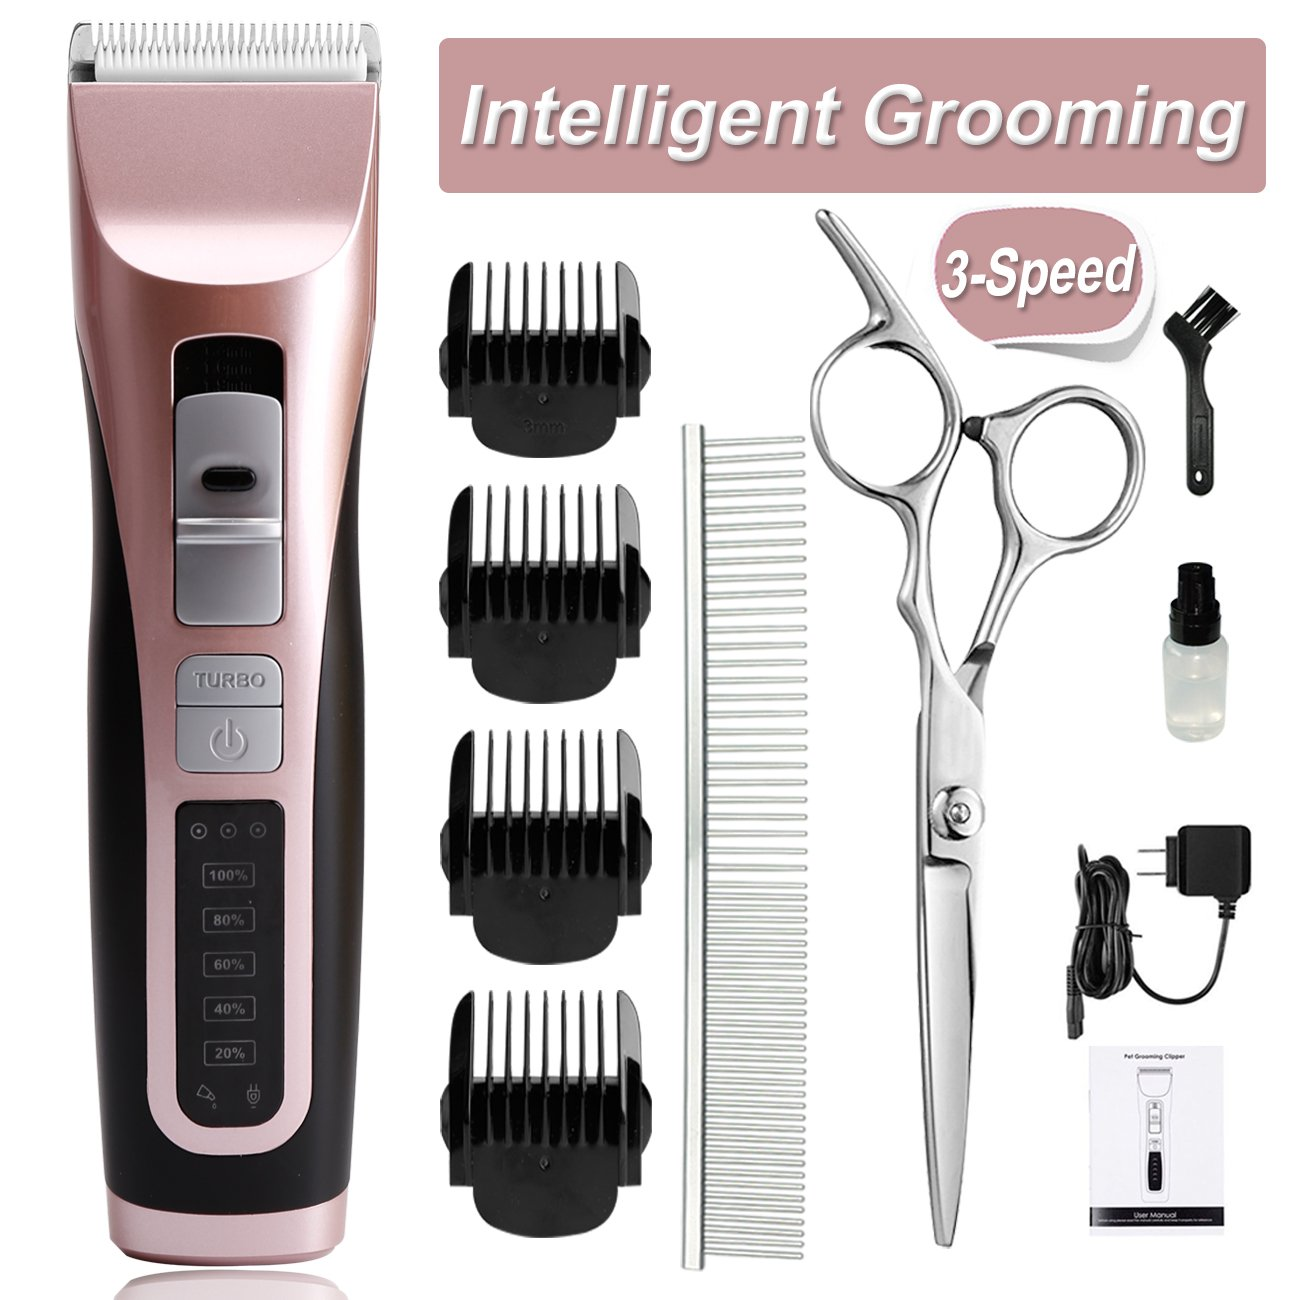 cyrico 3-Speed Dog Clippers for Thick Coat Dog Grooming Clippers Kit Professional Heavy Duty Cordless Pet Clippers Trimmers for Small Medium Large Dogs Cats with Intelligent Reminders (3-Speed)